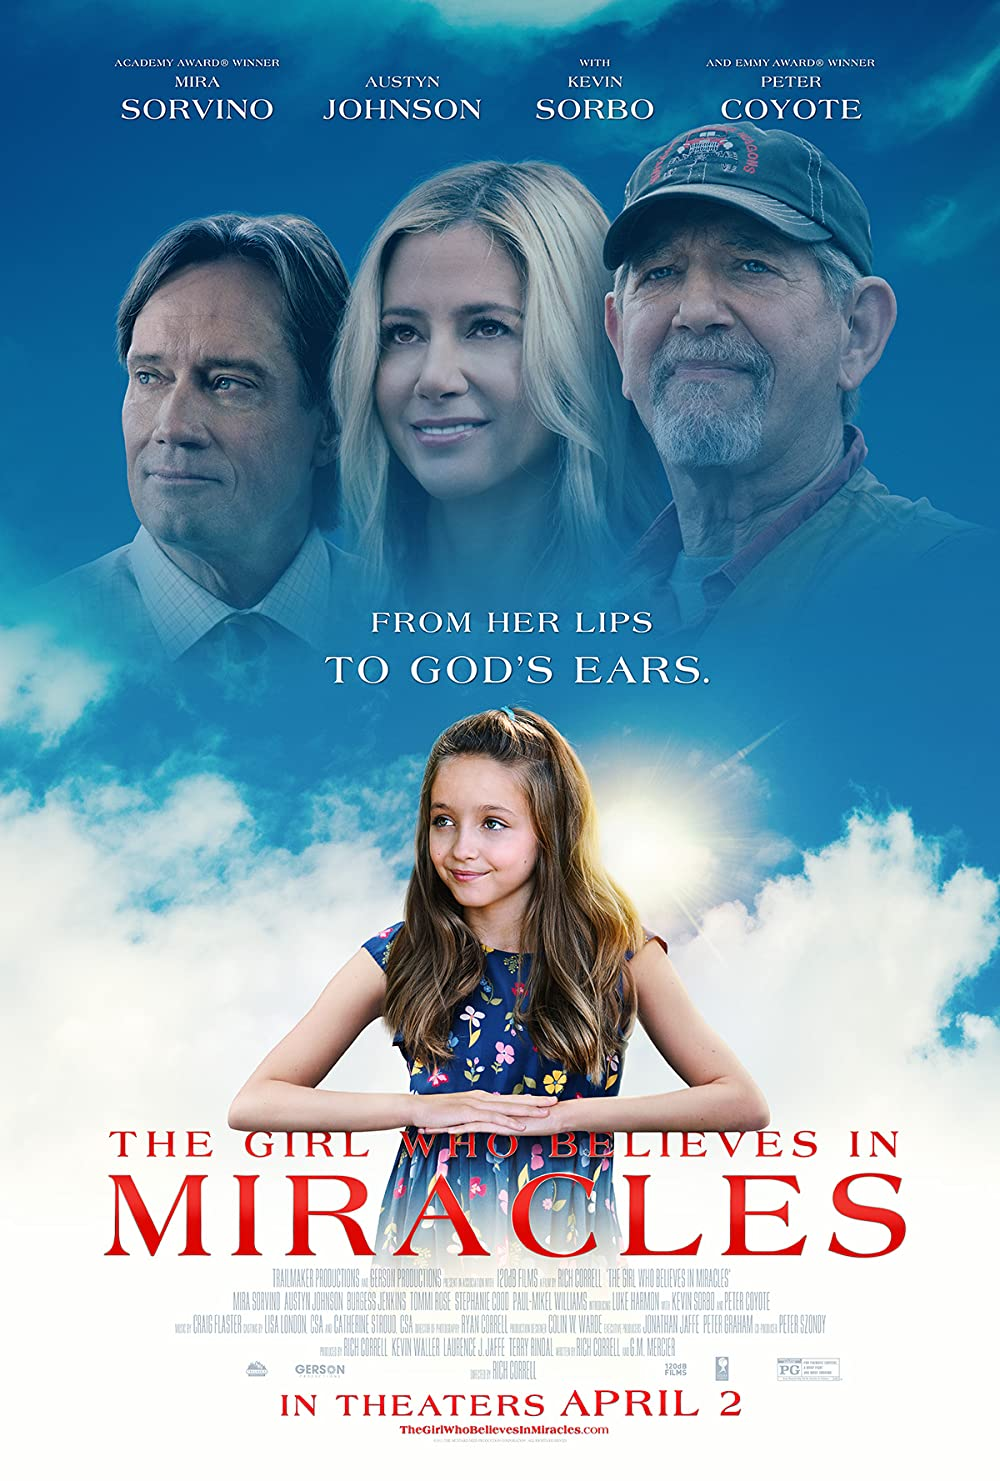 The Girl Who Believes in Miracles poster